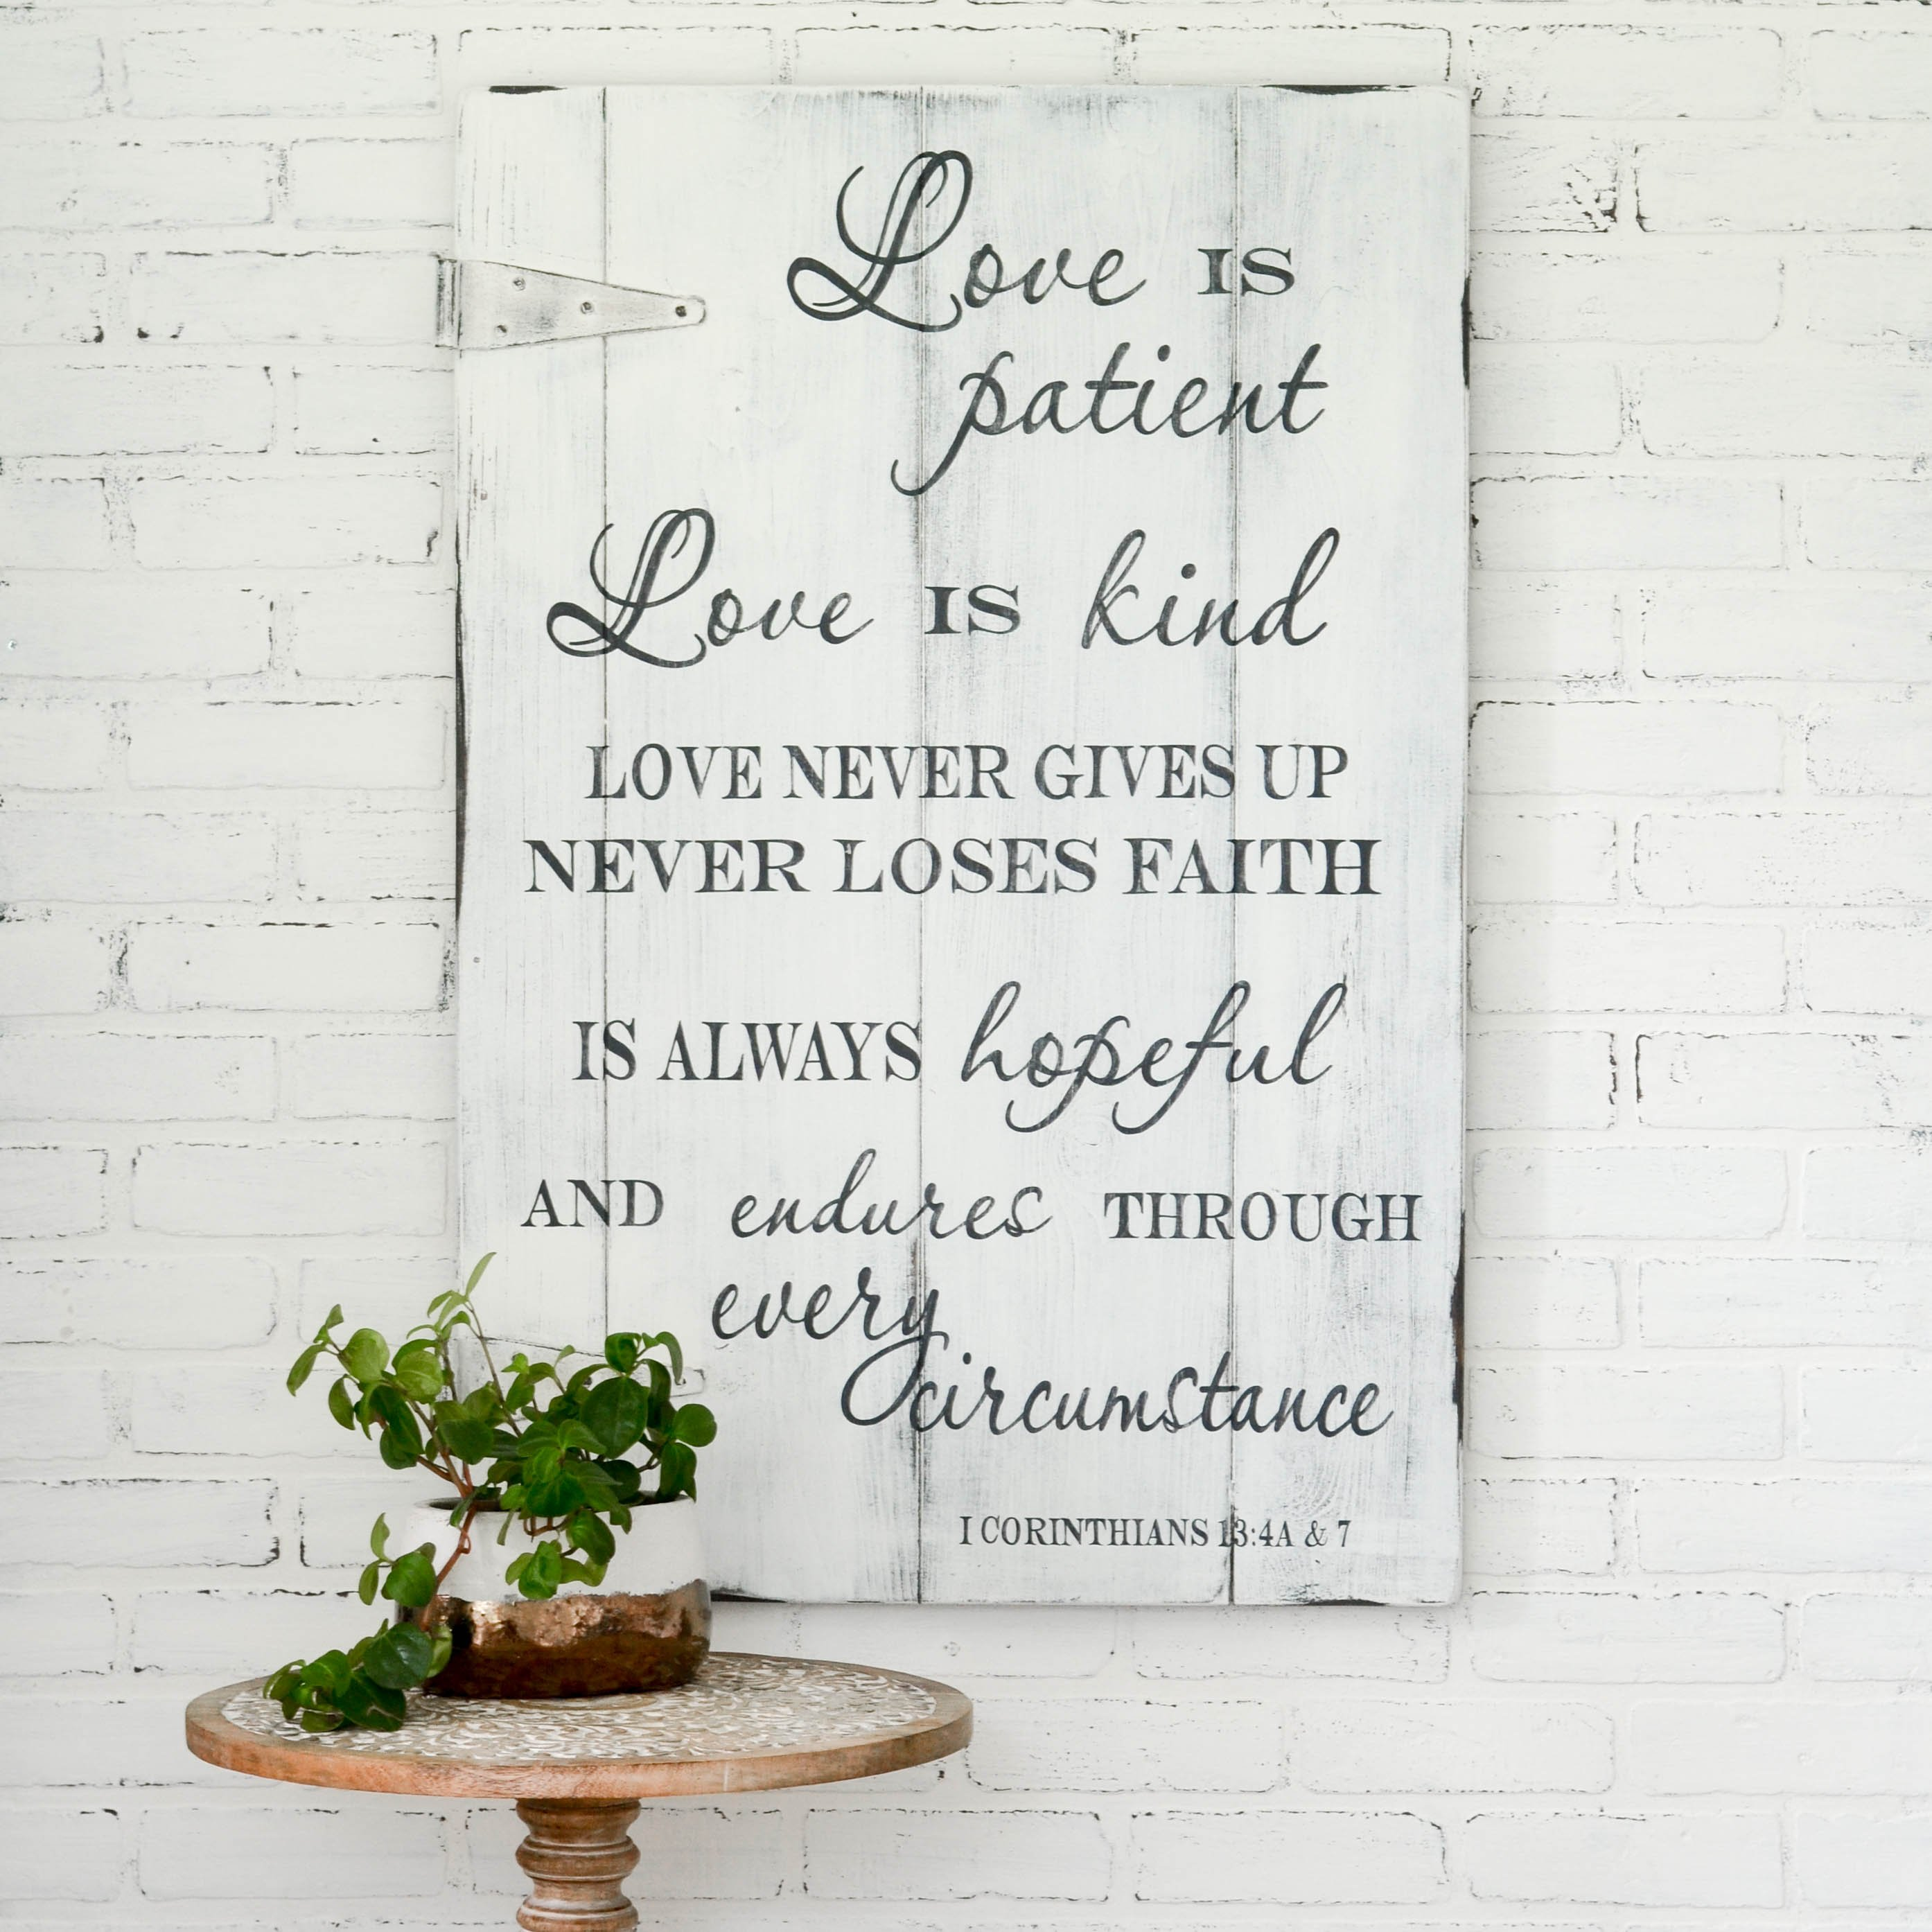 Love_is_patient_sign-2_cd5d284c-8ec1-4d08-a1e3-c08444da6d33